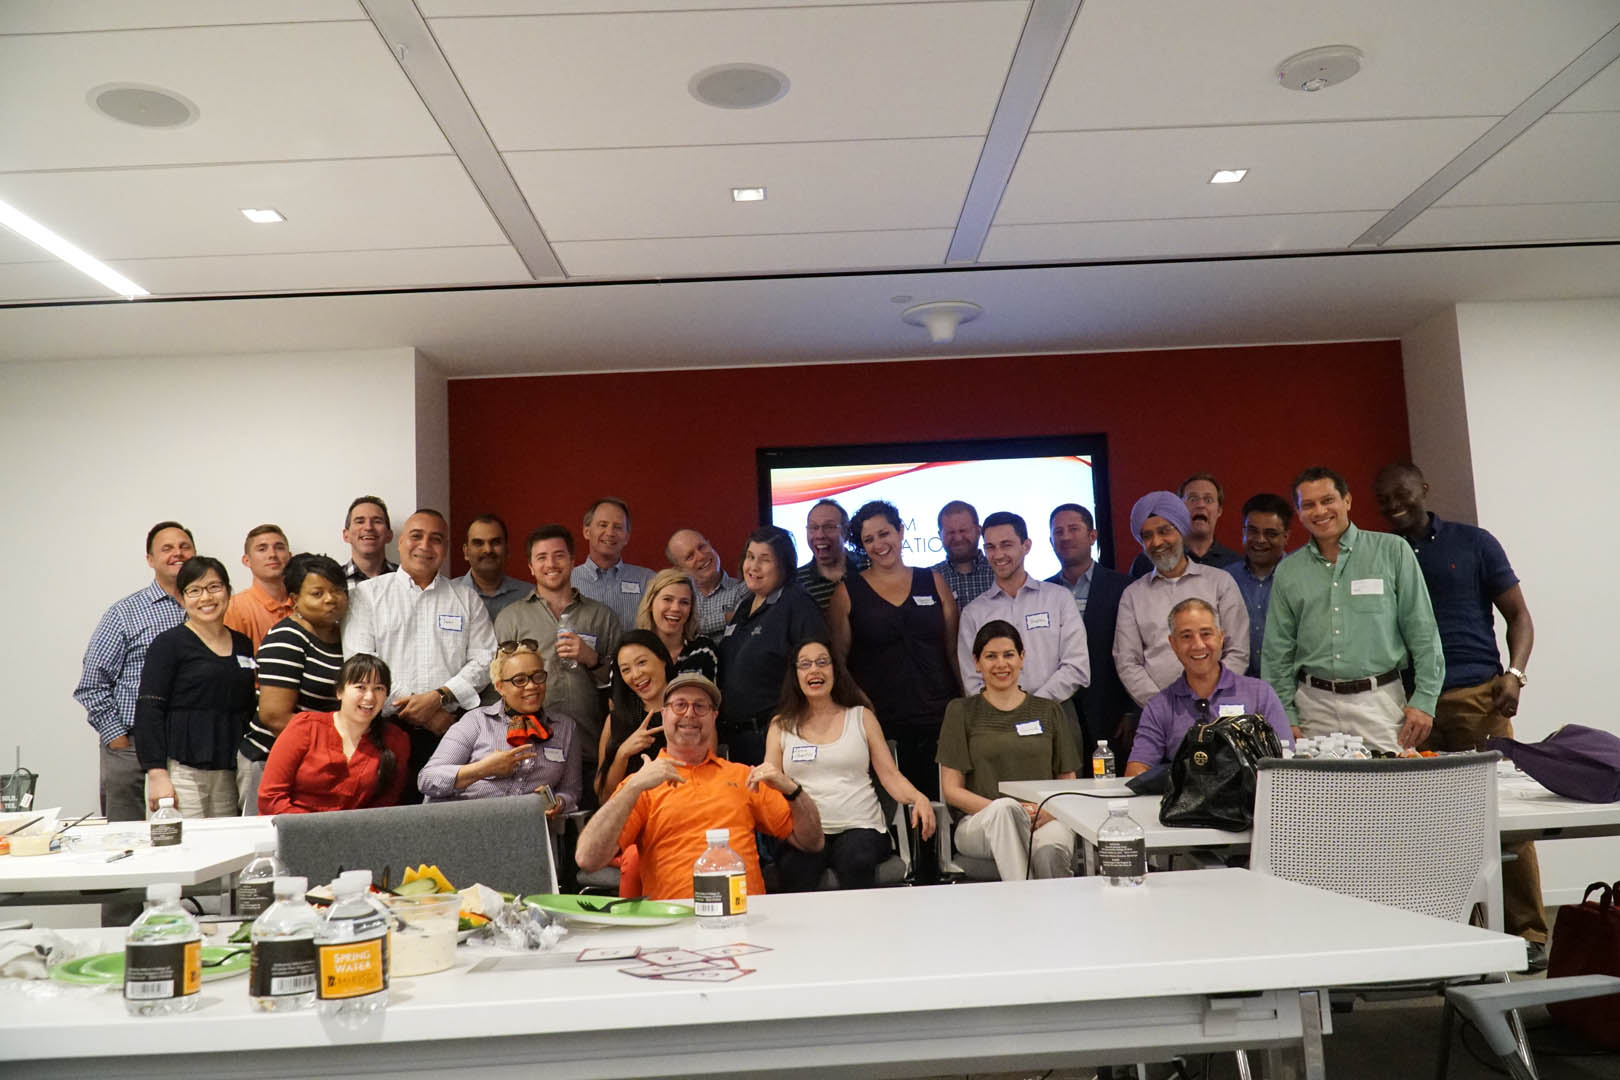 Steve Moubray hosting Agile Coaching DC Meetup Event